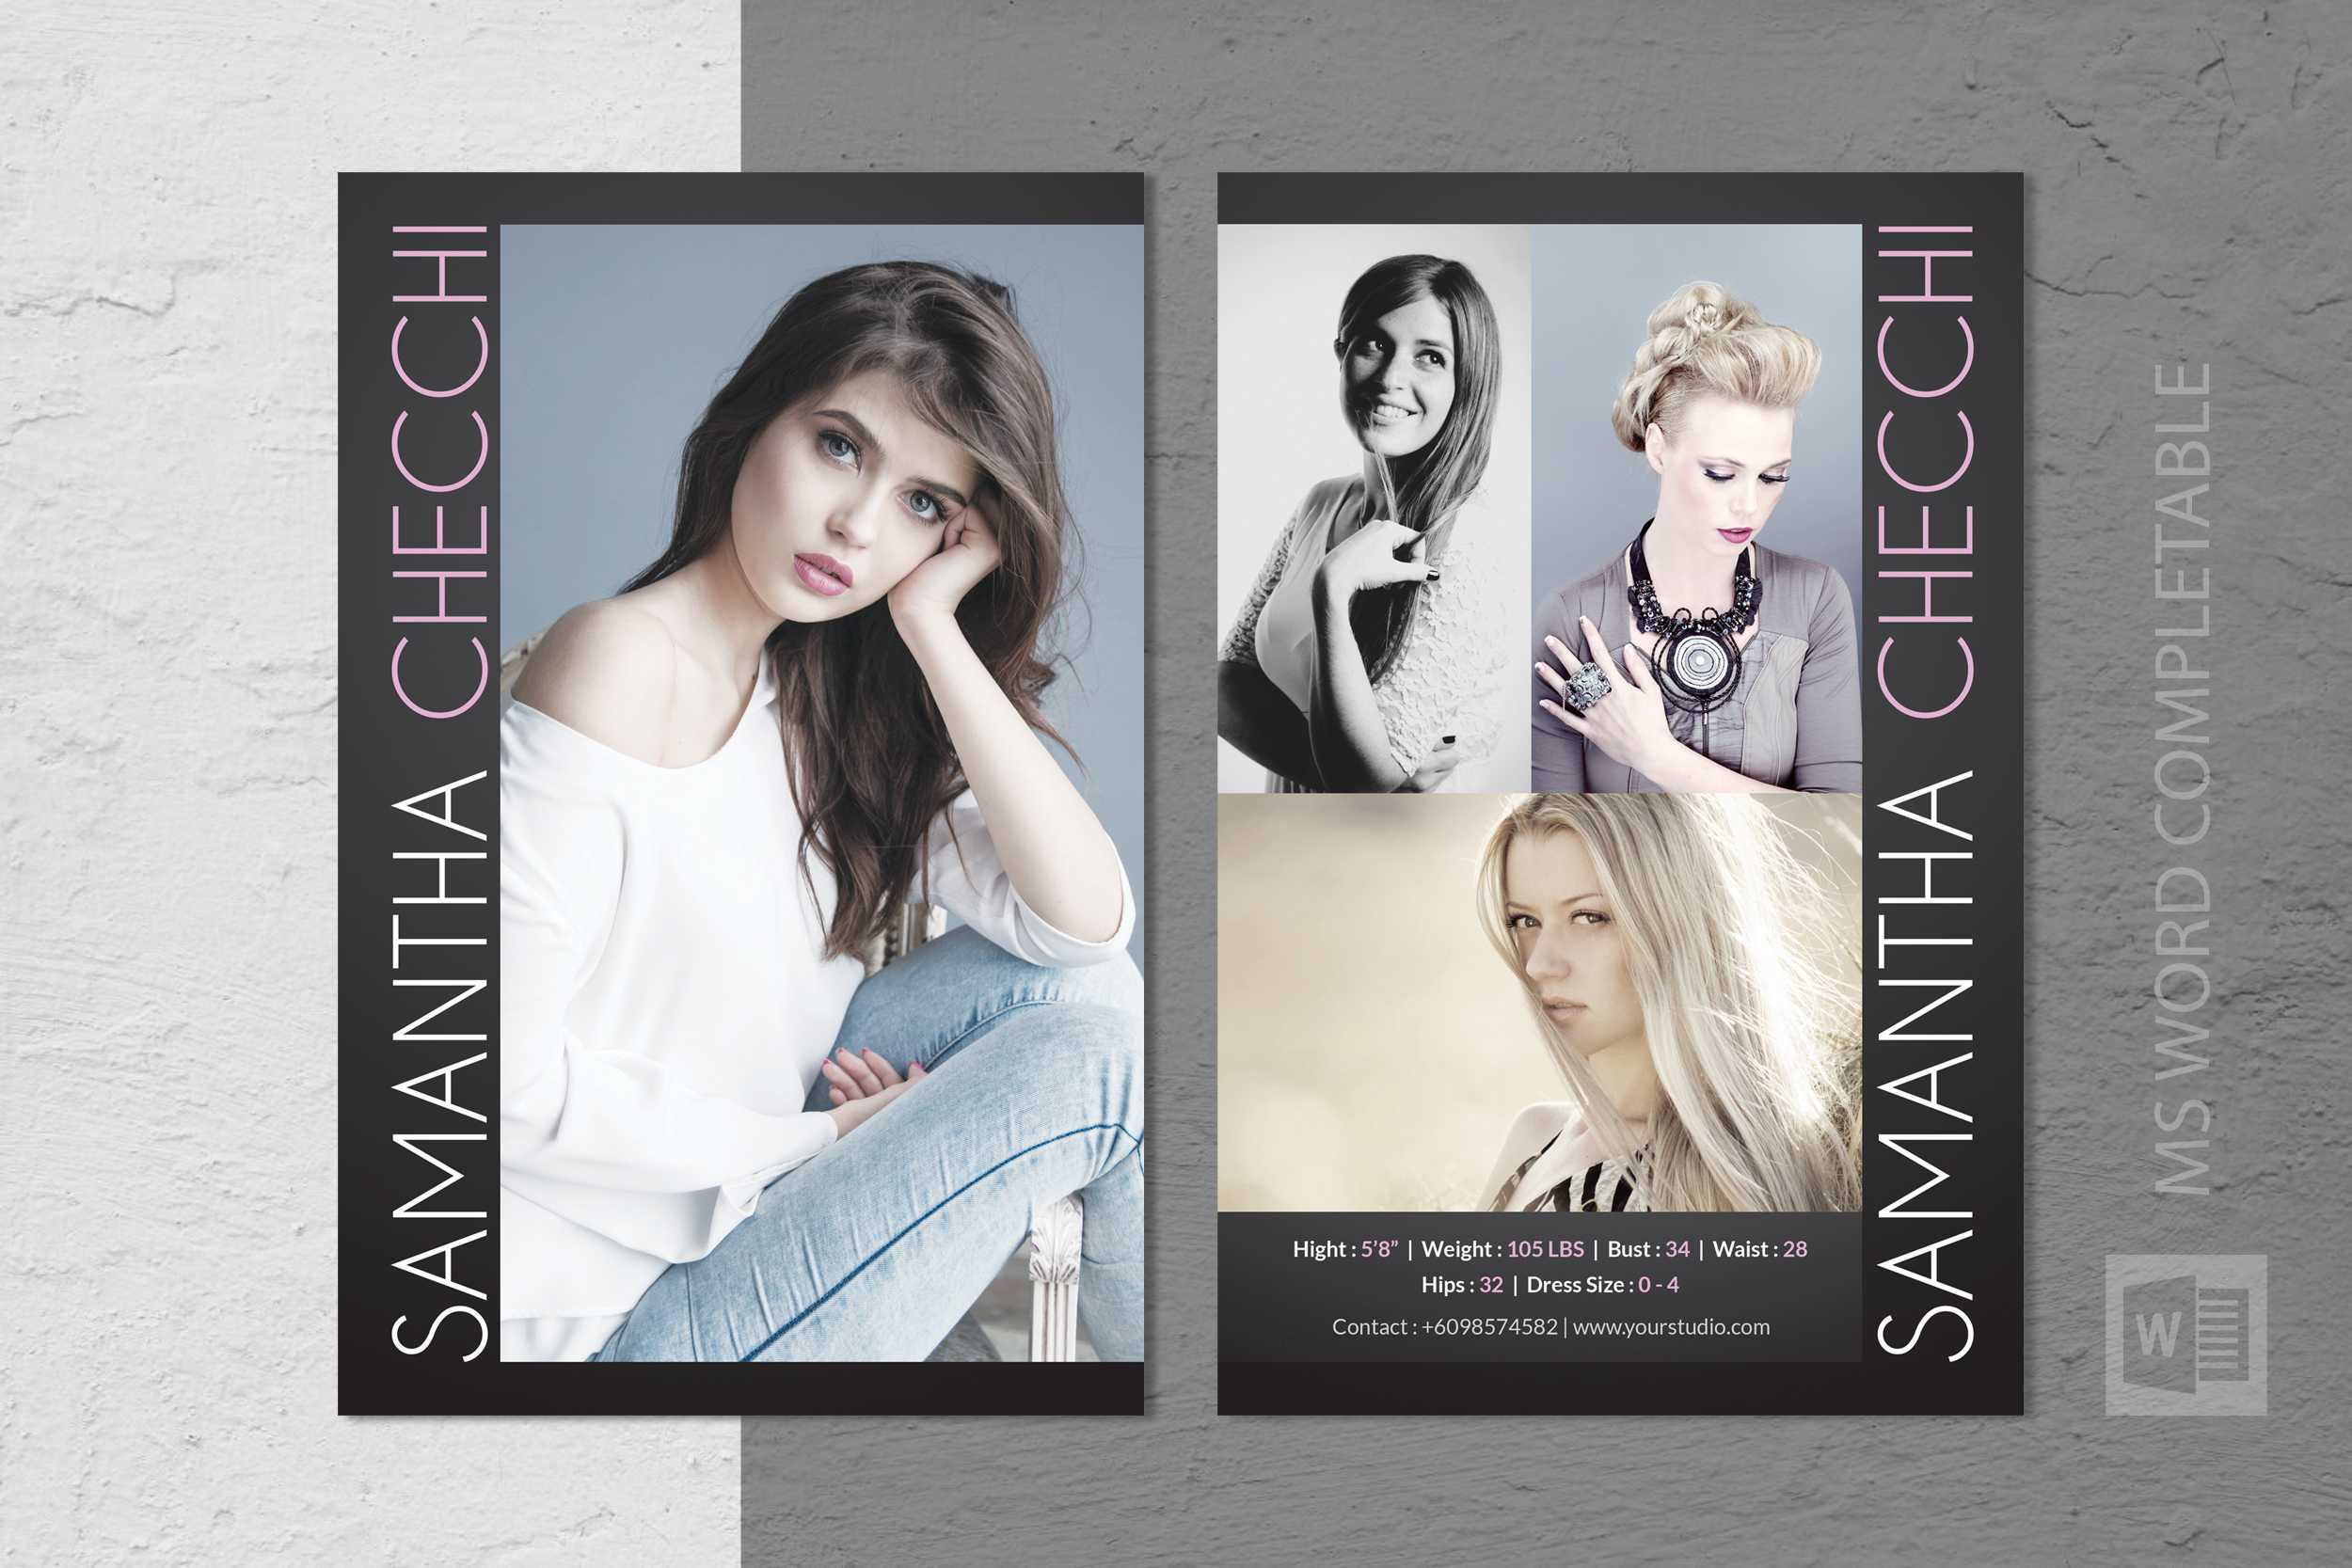 015 Model Comp Card Template Ideas Outstanding Psd Free Pertaining To Model Comp Card Template Free